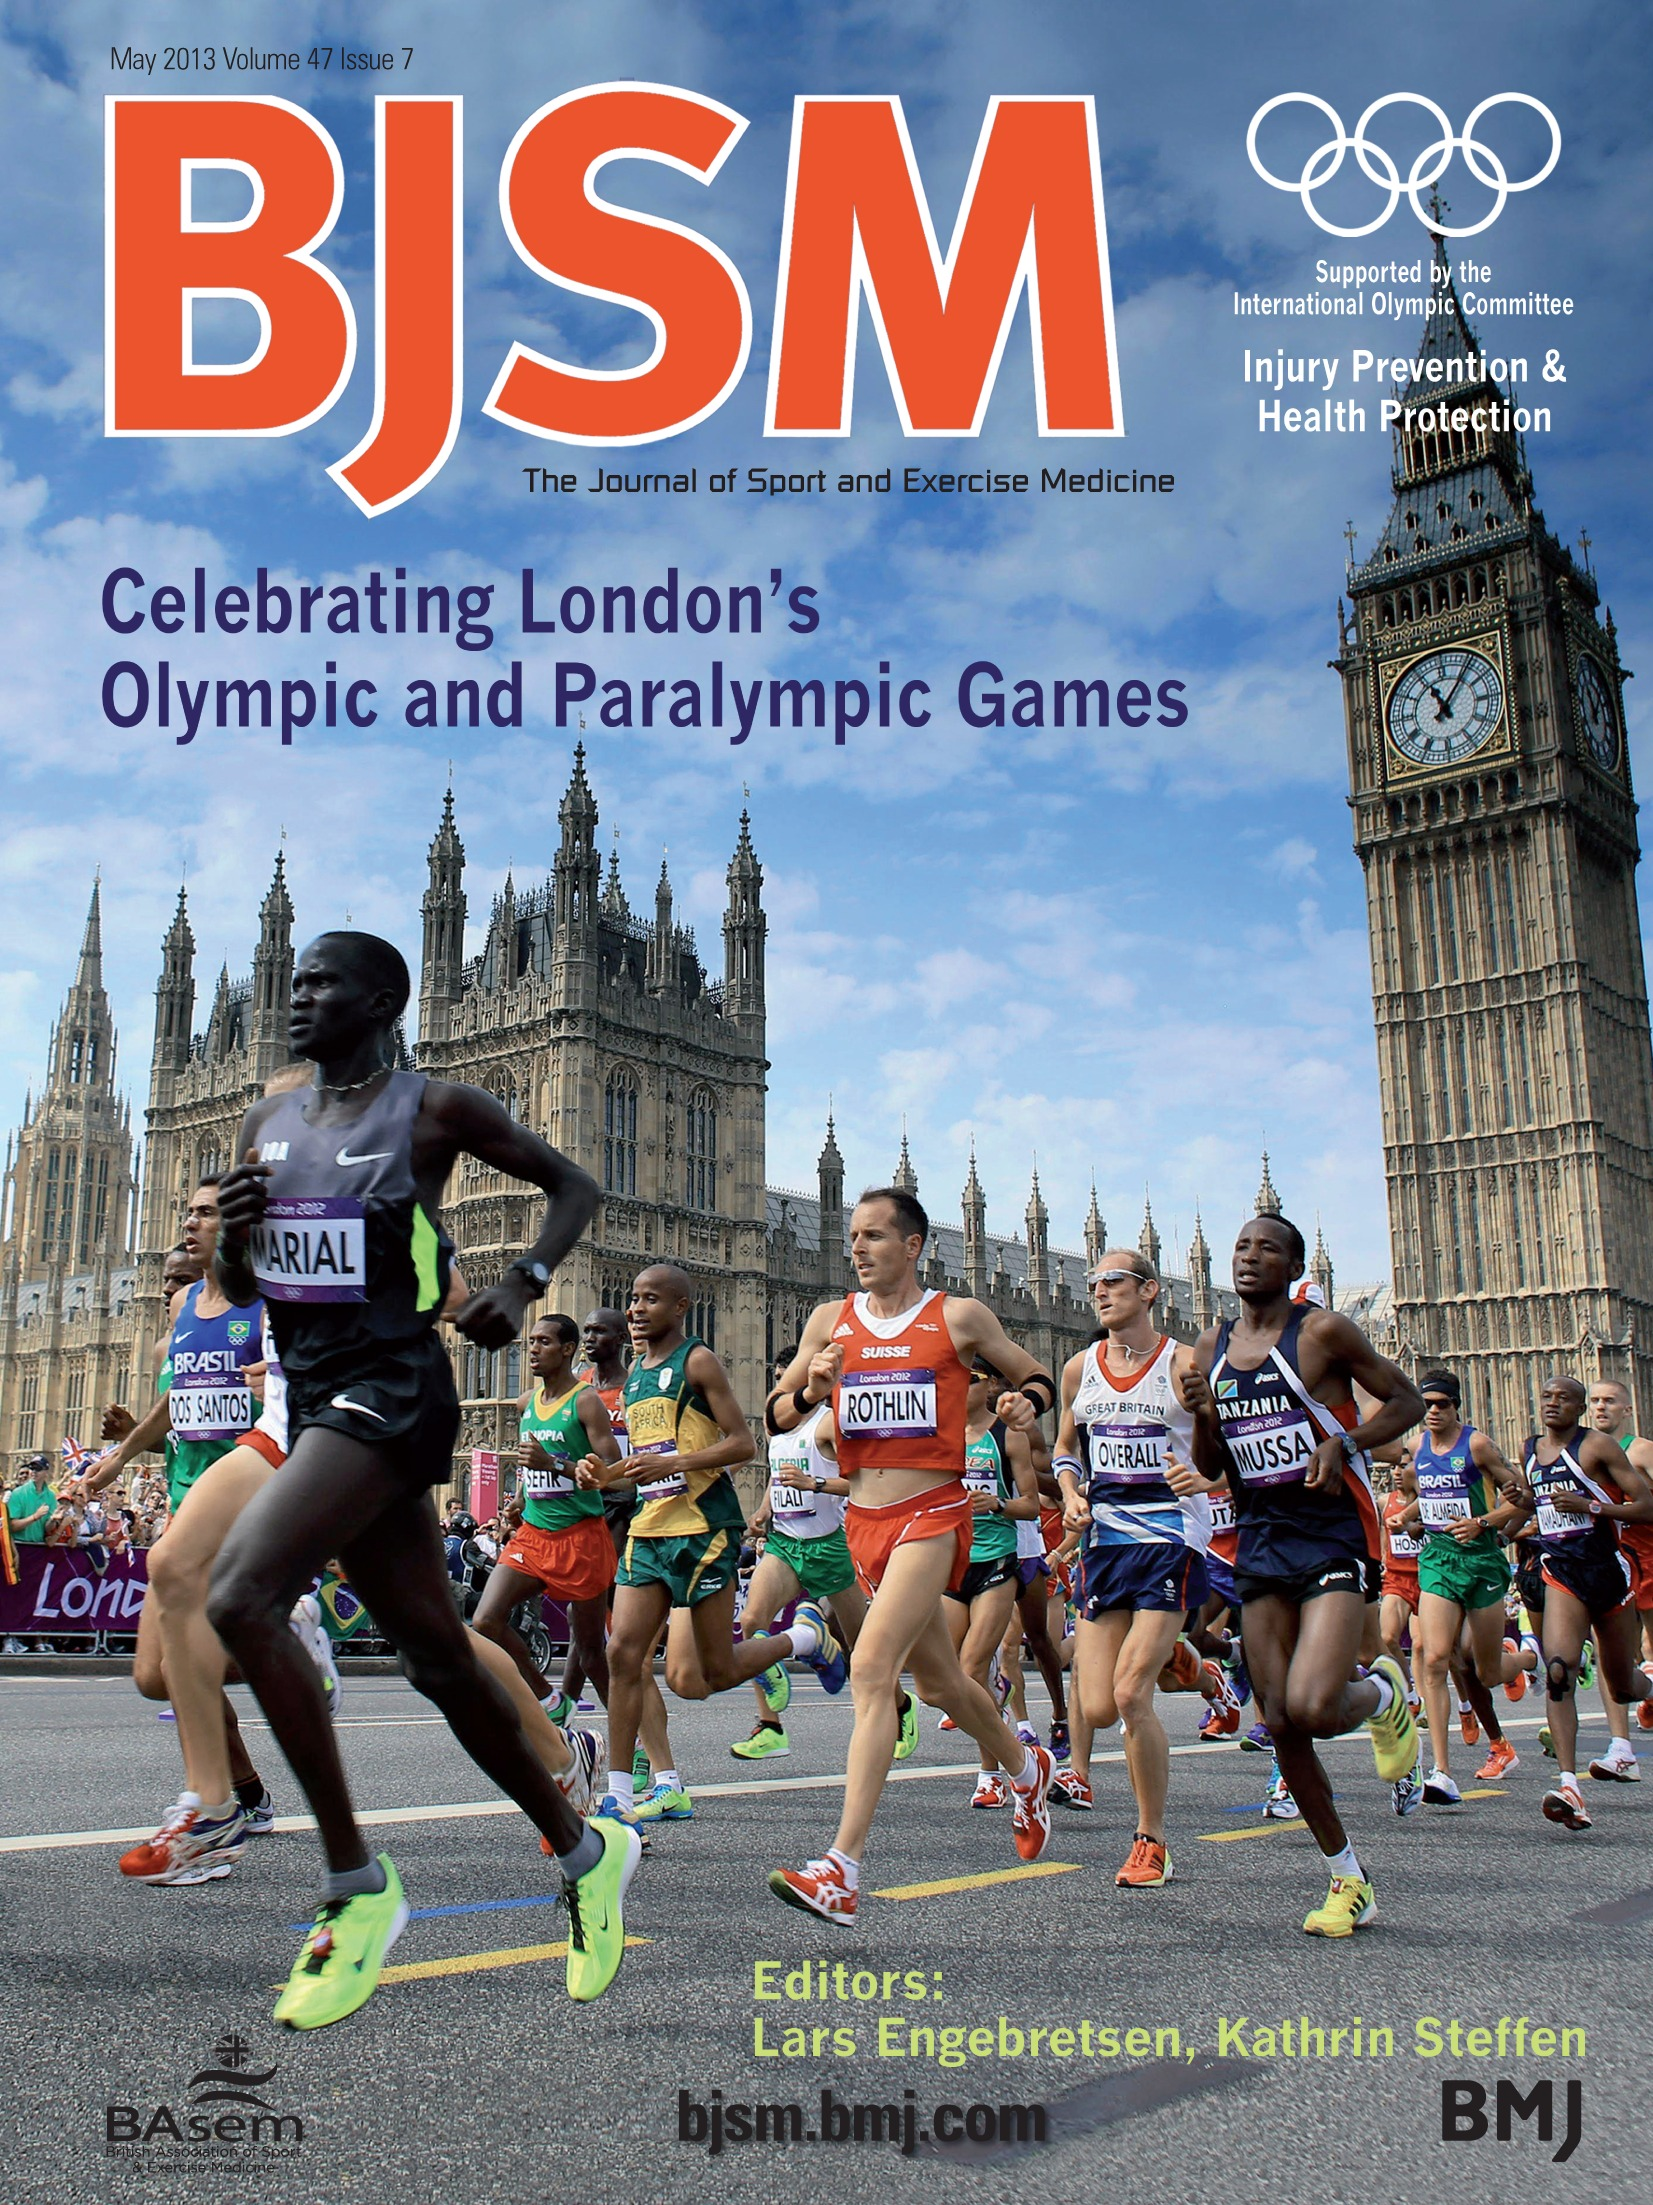 The epidemiology of injuries at the London 2012 Paralympic Games ... bd6dcae03c1